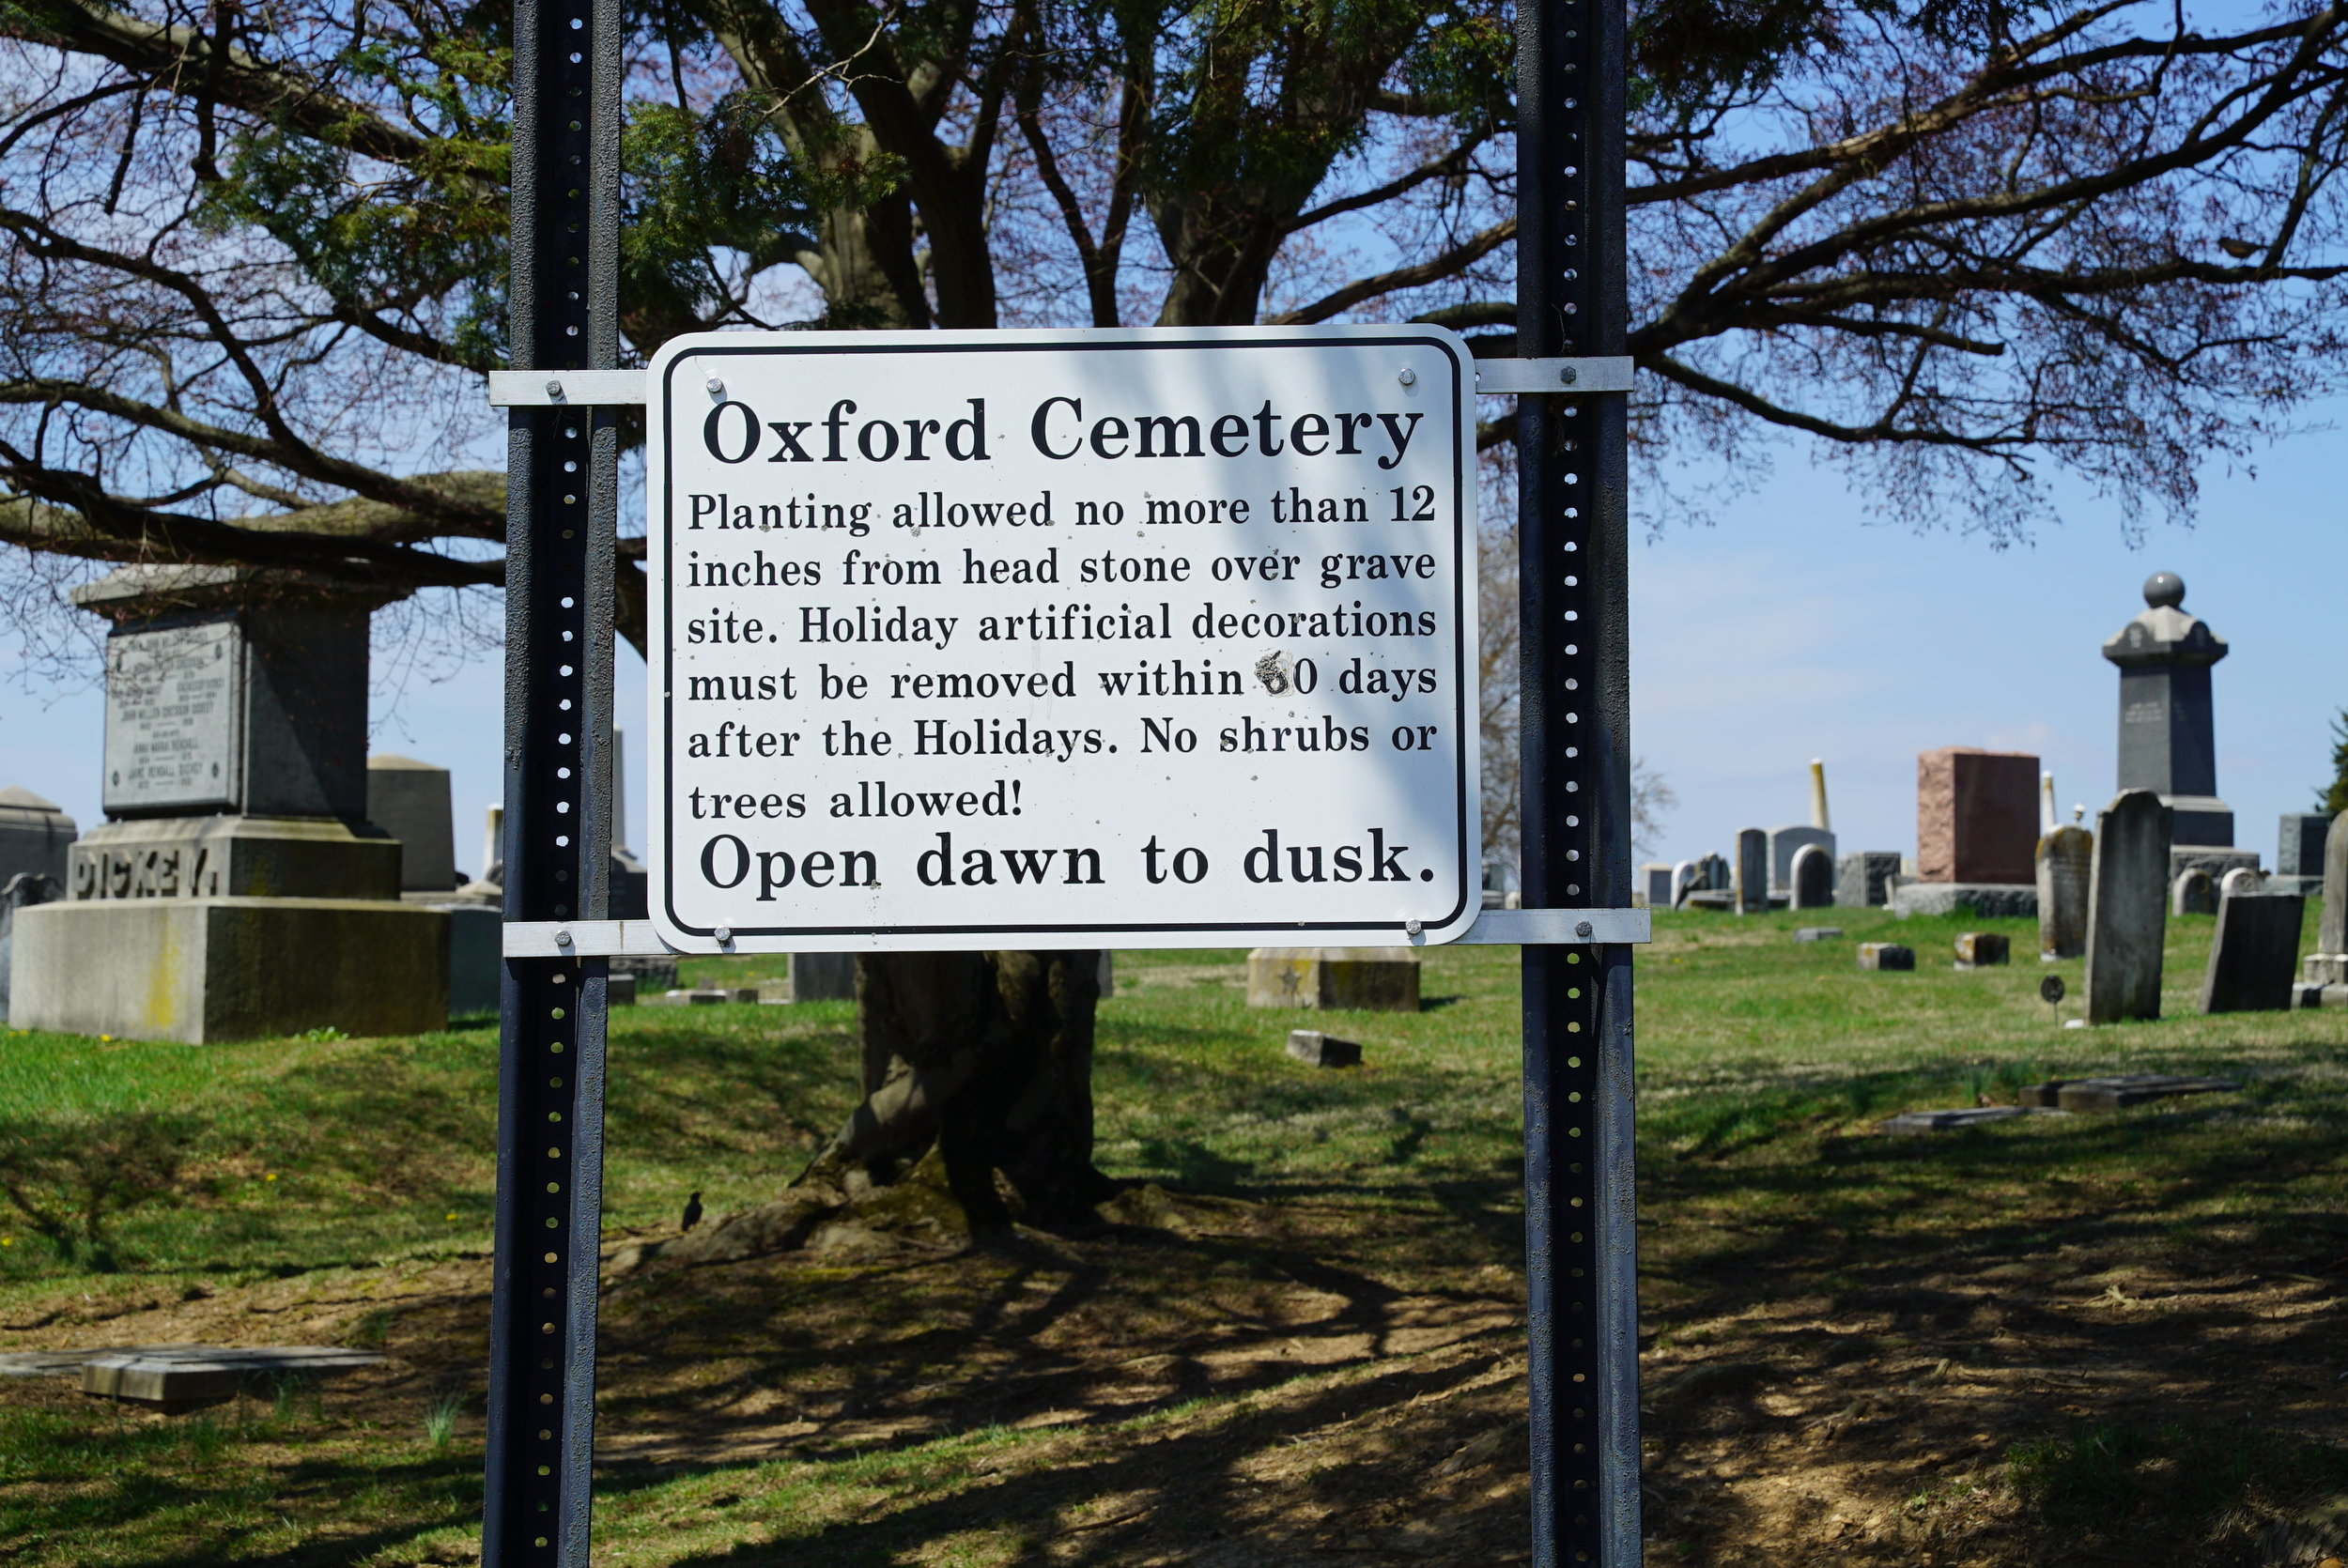 Sign at Oxford Cemetery. Oxford, Pennsylvania.